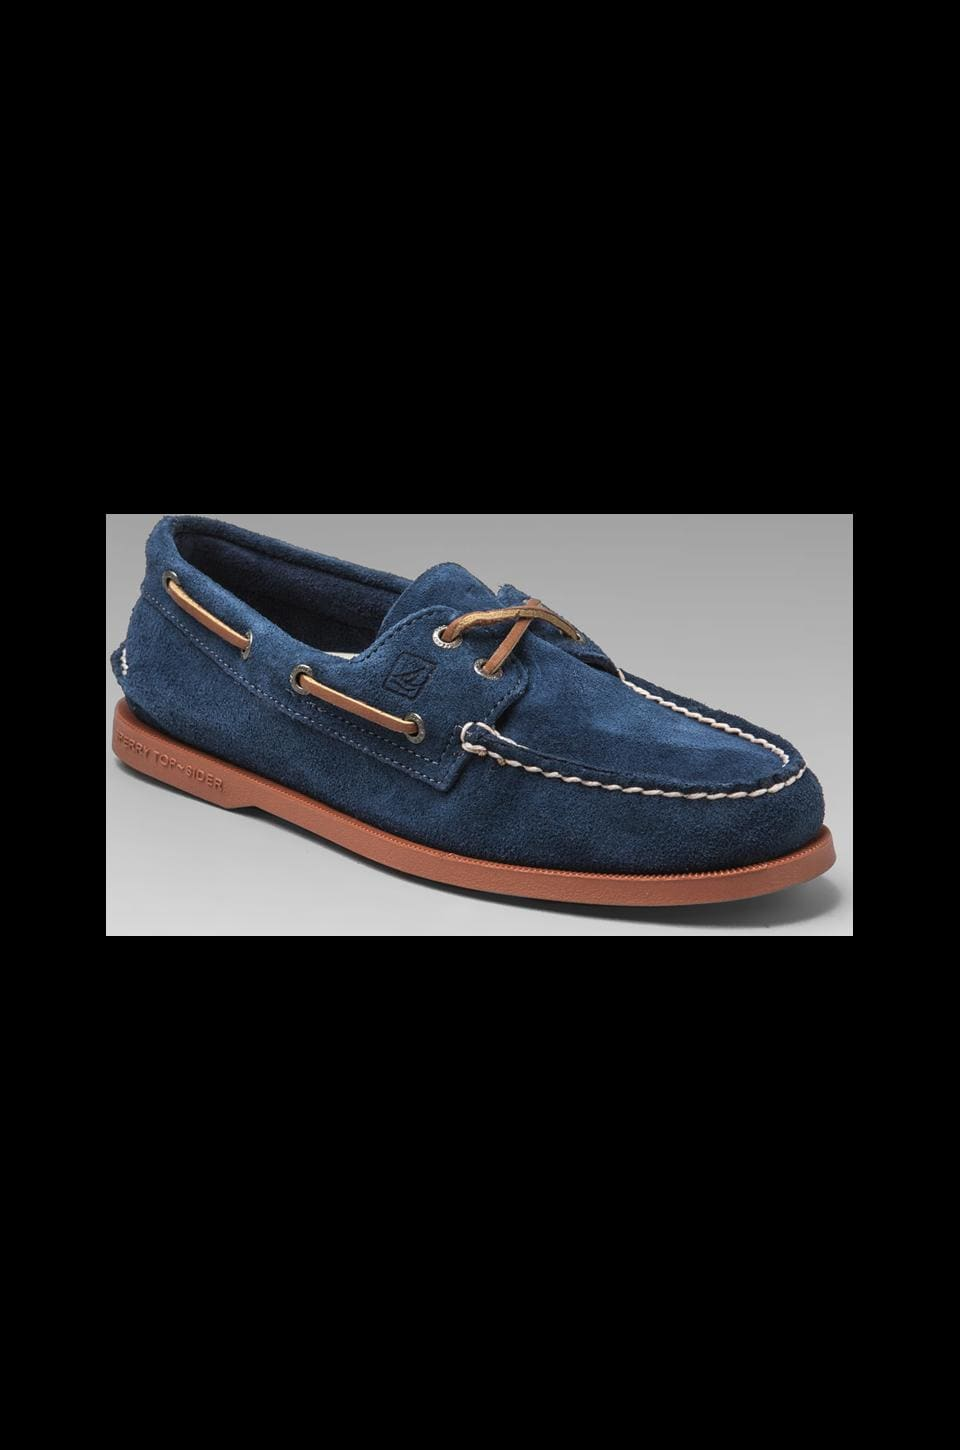 Sperry Top-Sider A/O 2-Eye in Navy Suede